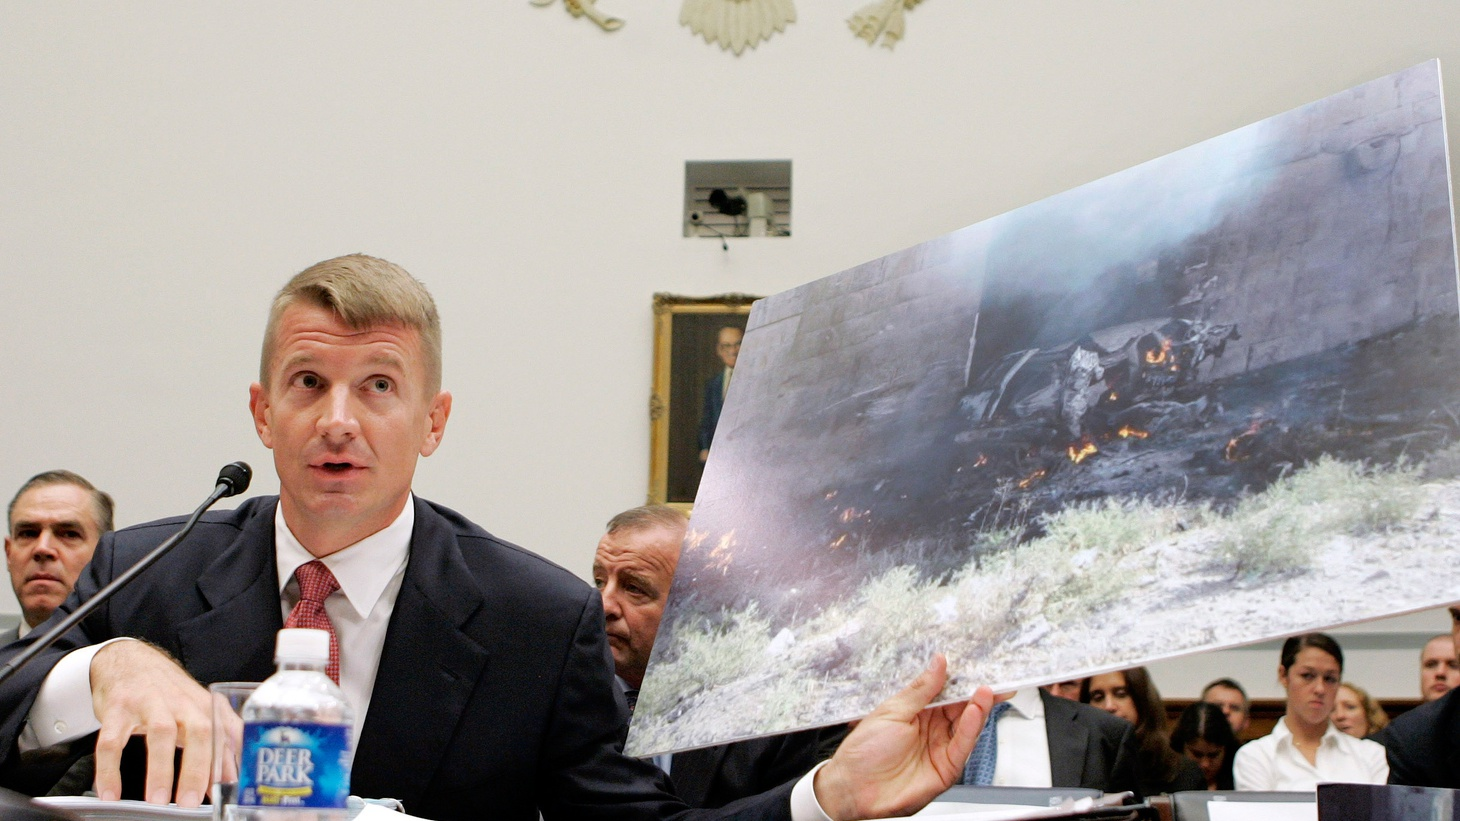 Blackwater CEO Erik Prince holds a photograph of the remains of a blown up vehicle in Iraq while testifying before the House Oversight and Government Reform Committee  on Blackwell security contracting in Iraq and Afghanistan, October 2, 2007.